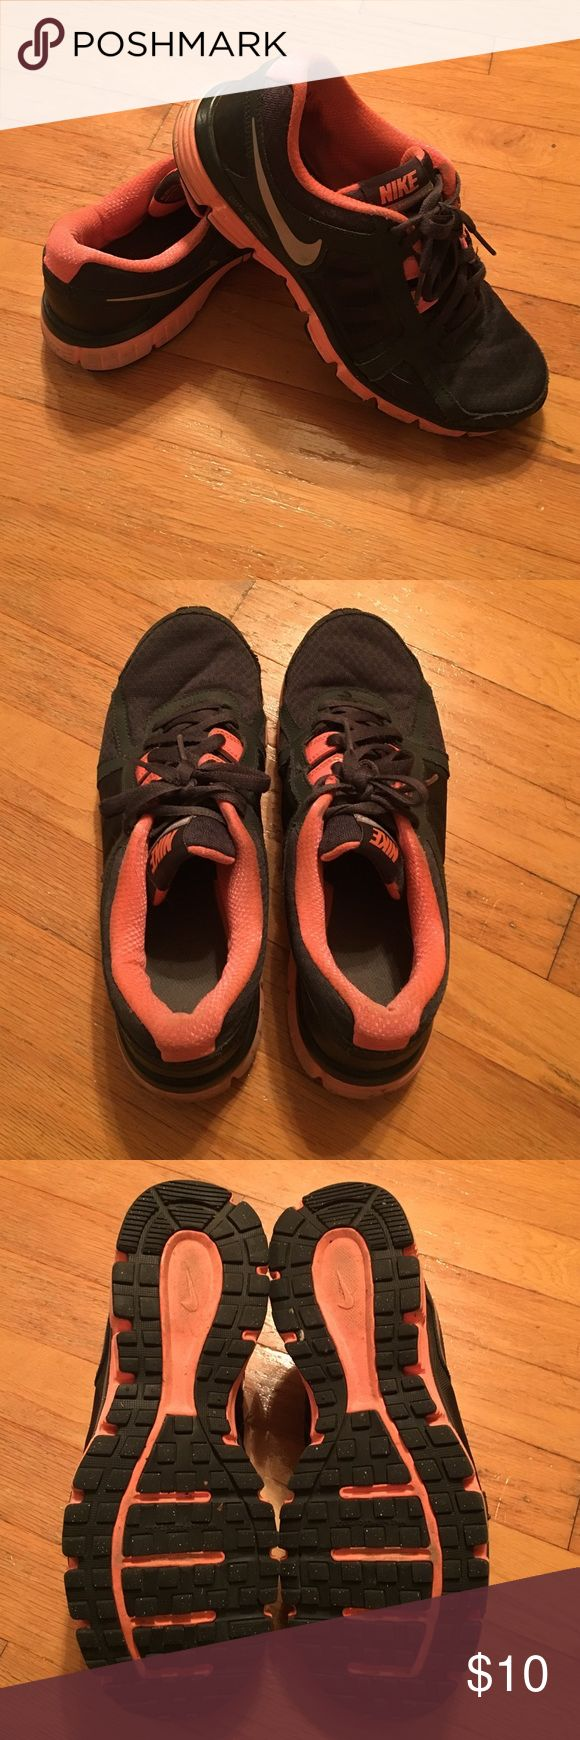 Nike Sneakers Coral and charcoal grey Nike dual fusion st2. In used condition. Some signs of wear. Women's size 10 Nike Shoes Sneakers